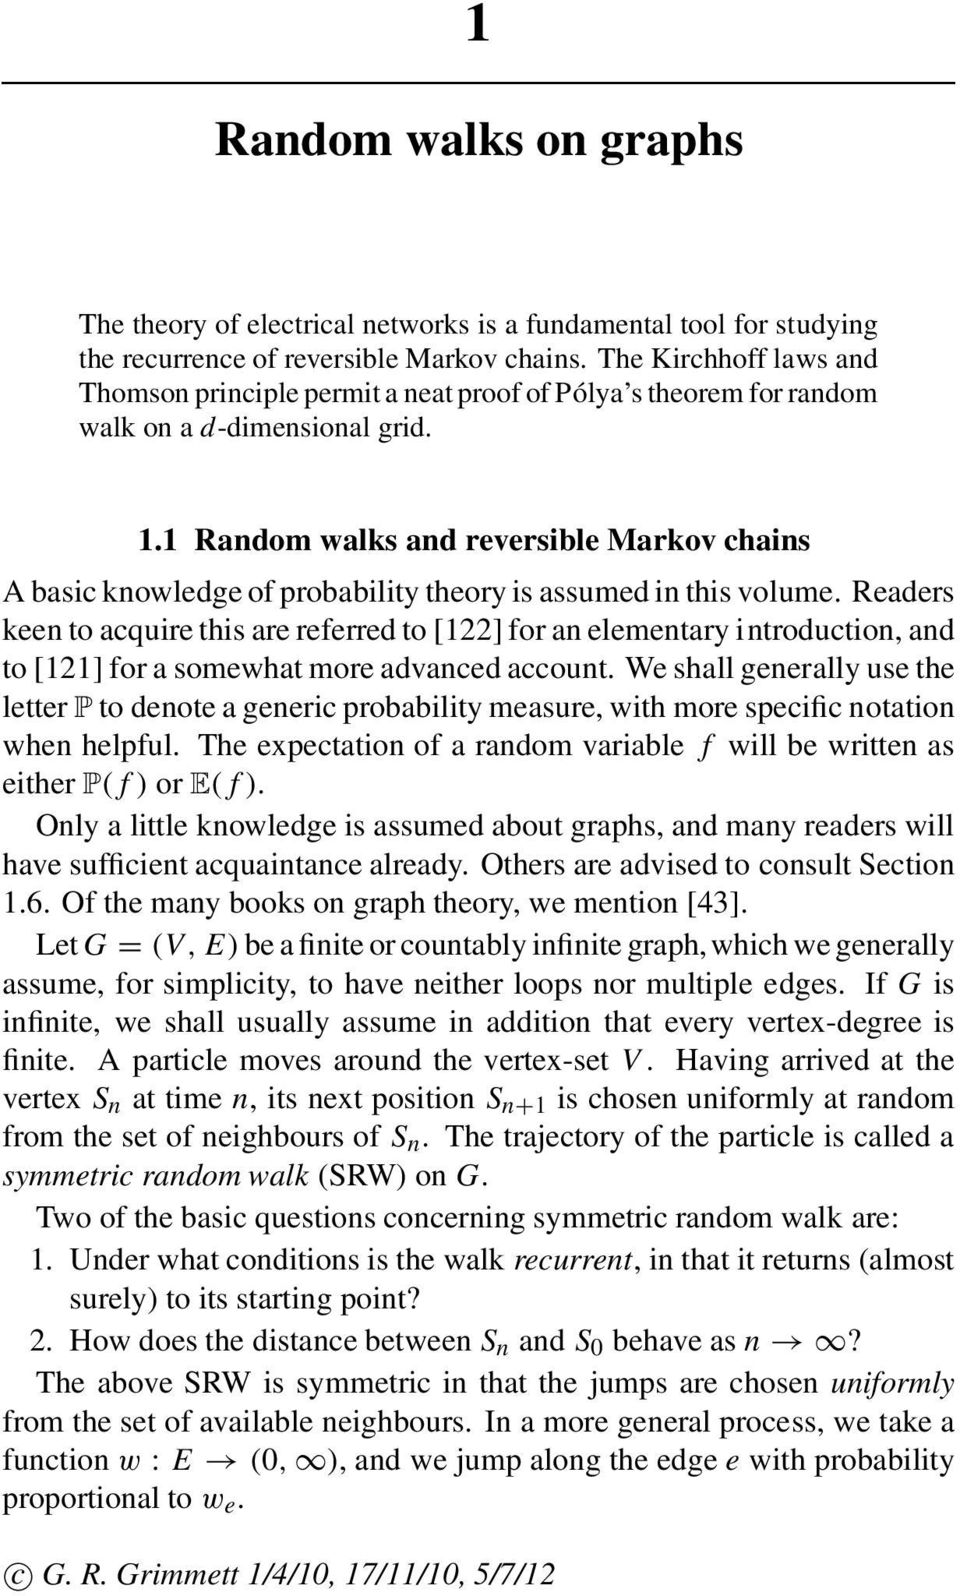 1 Random walks and reversible Markov chains A basic knowledge of probability theory is assumed in this volume.